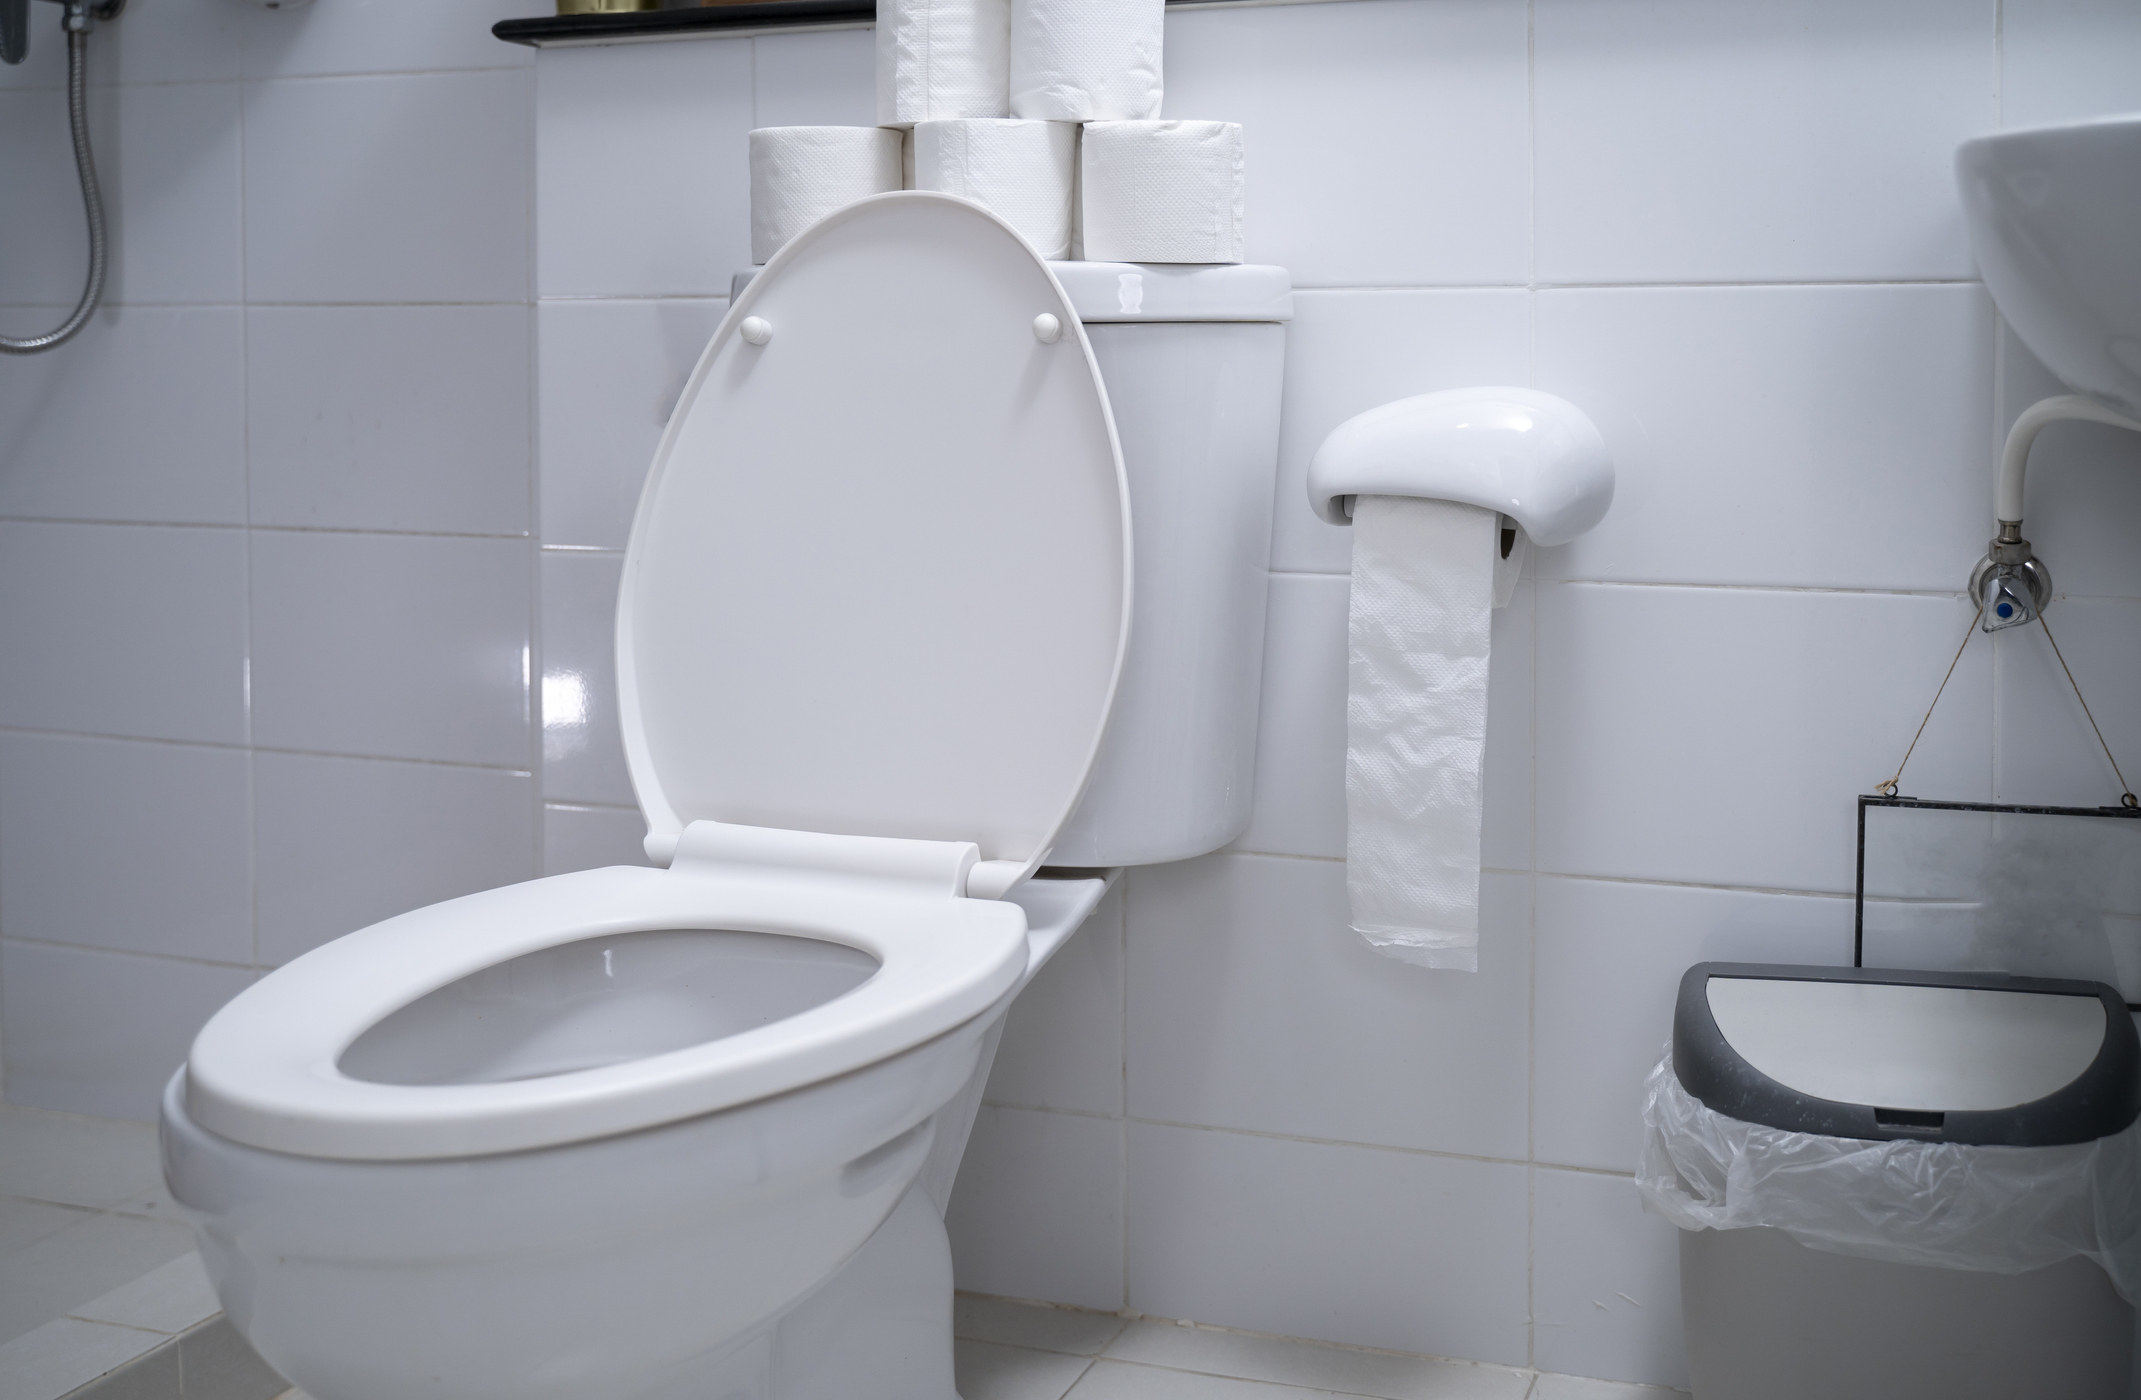 A toilet with an open lid in a clean bathroom